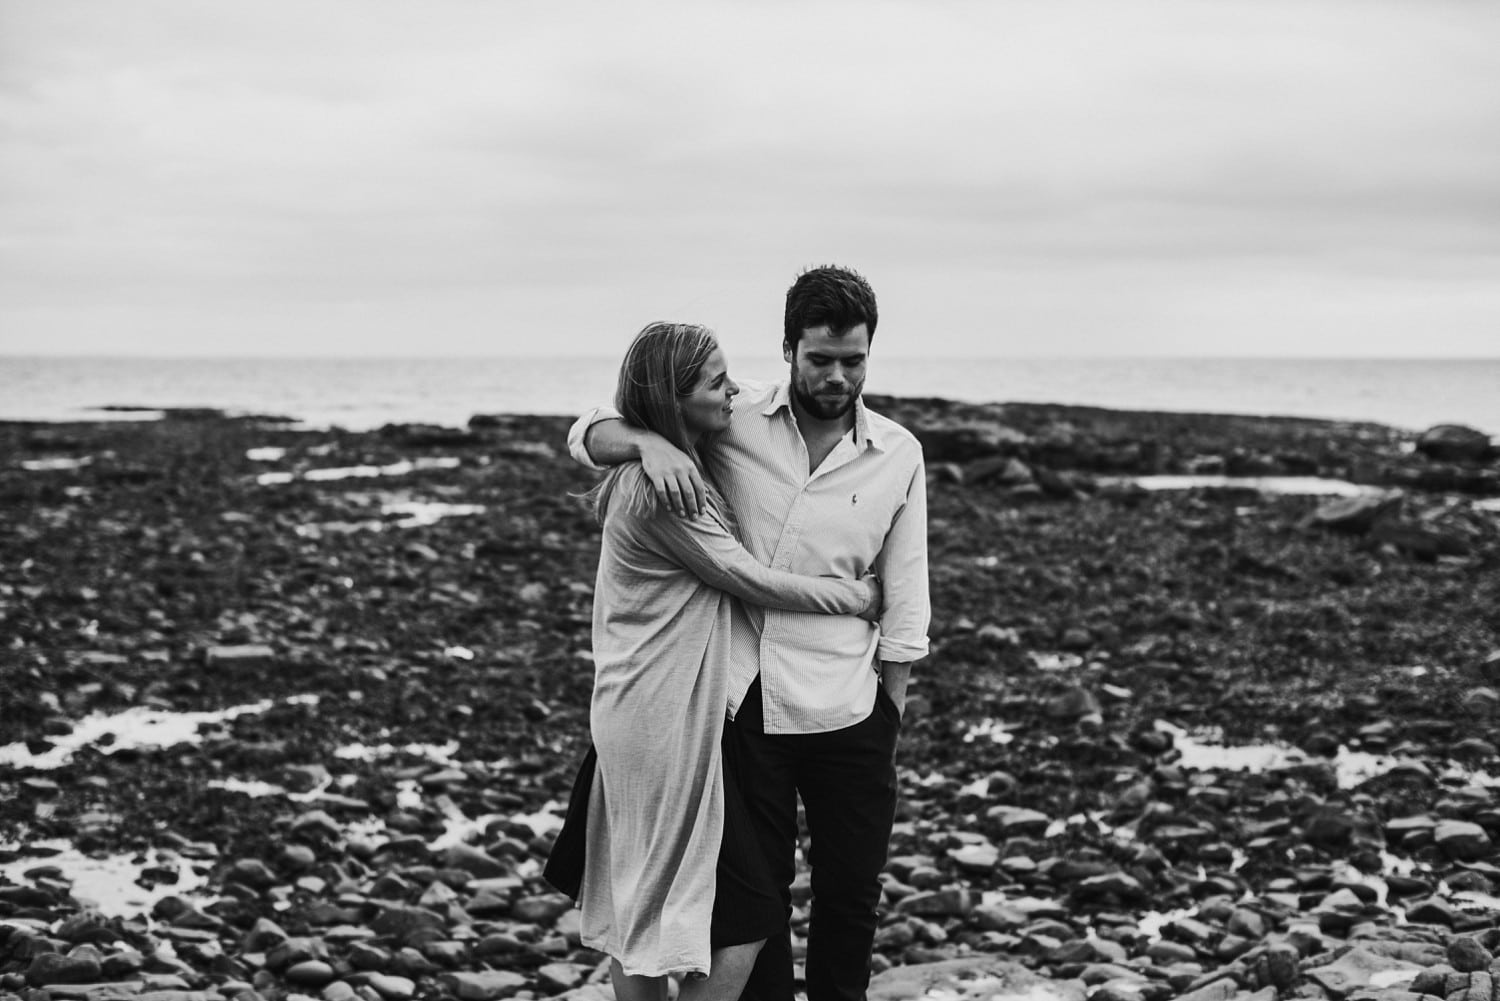 Teresa & Joe - Ireland Engagement Session | www.meredithlord.com